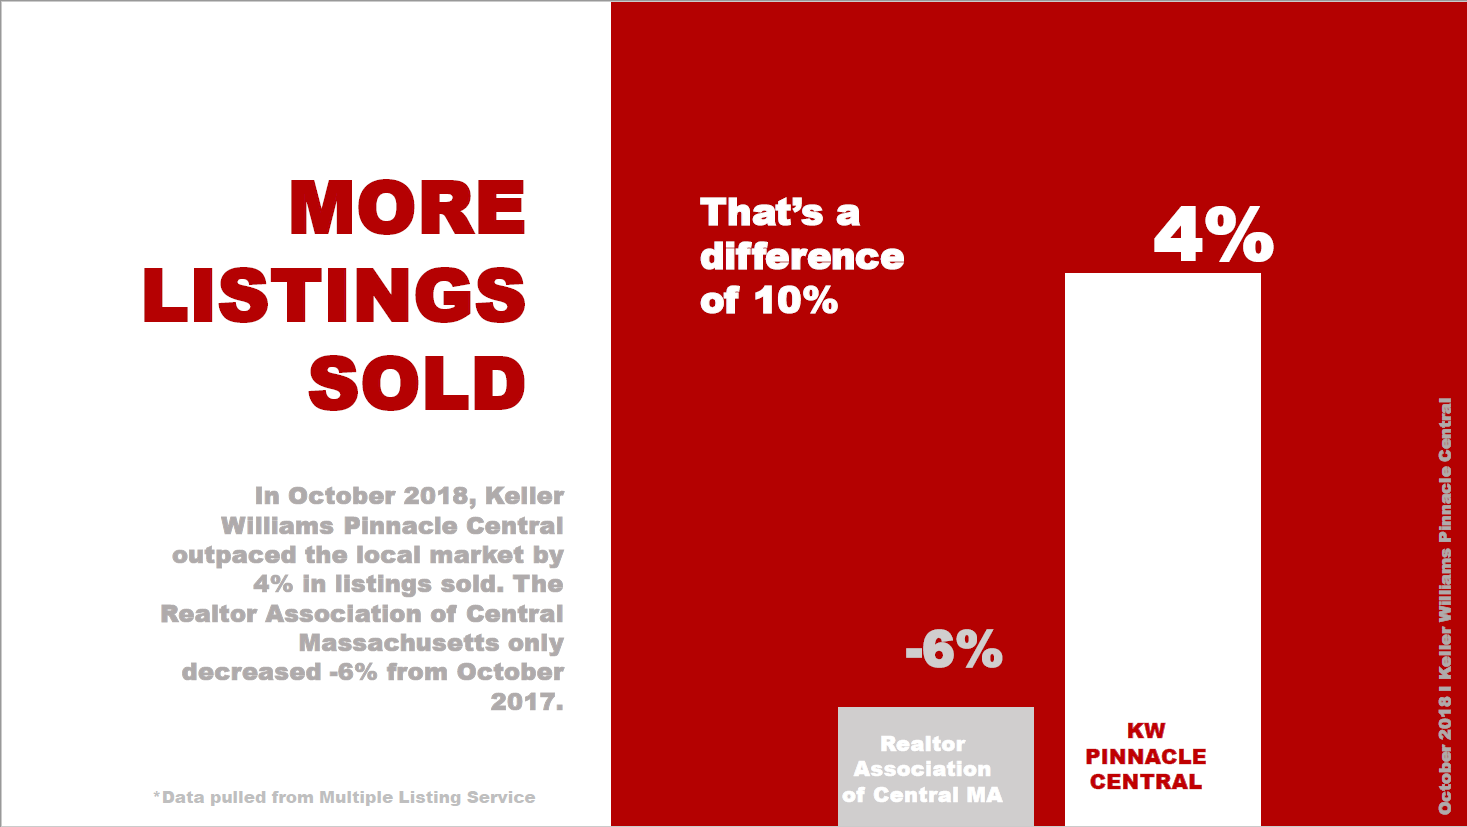 In October 2018, Keller Williams Pinnacle Central outpaced the local market by 4% in listings sold. The Realtor Association of Central Massachusetts only decreased -6% from October 2017.  That's a difference of 10%